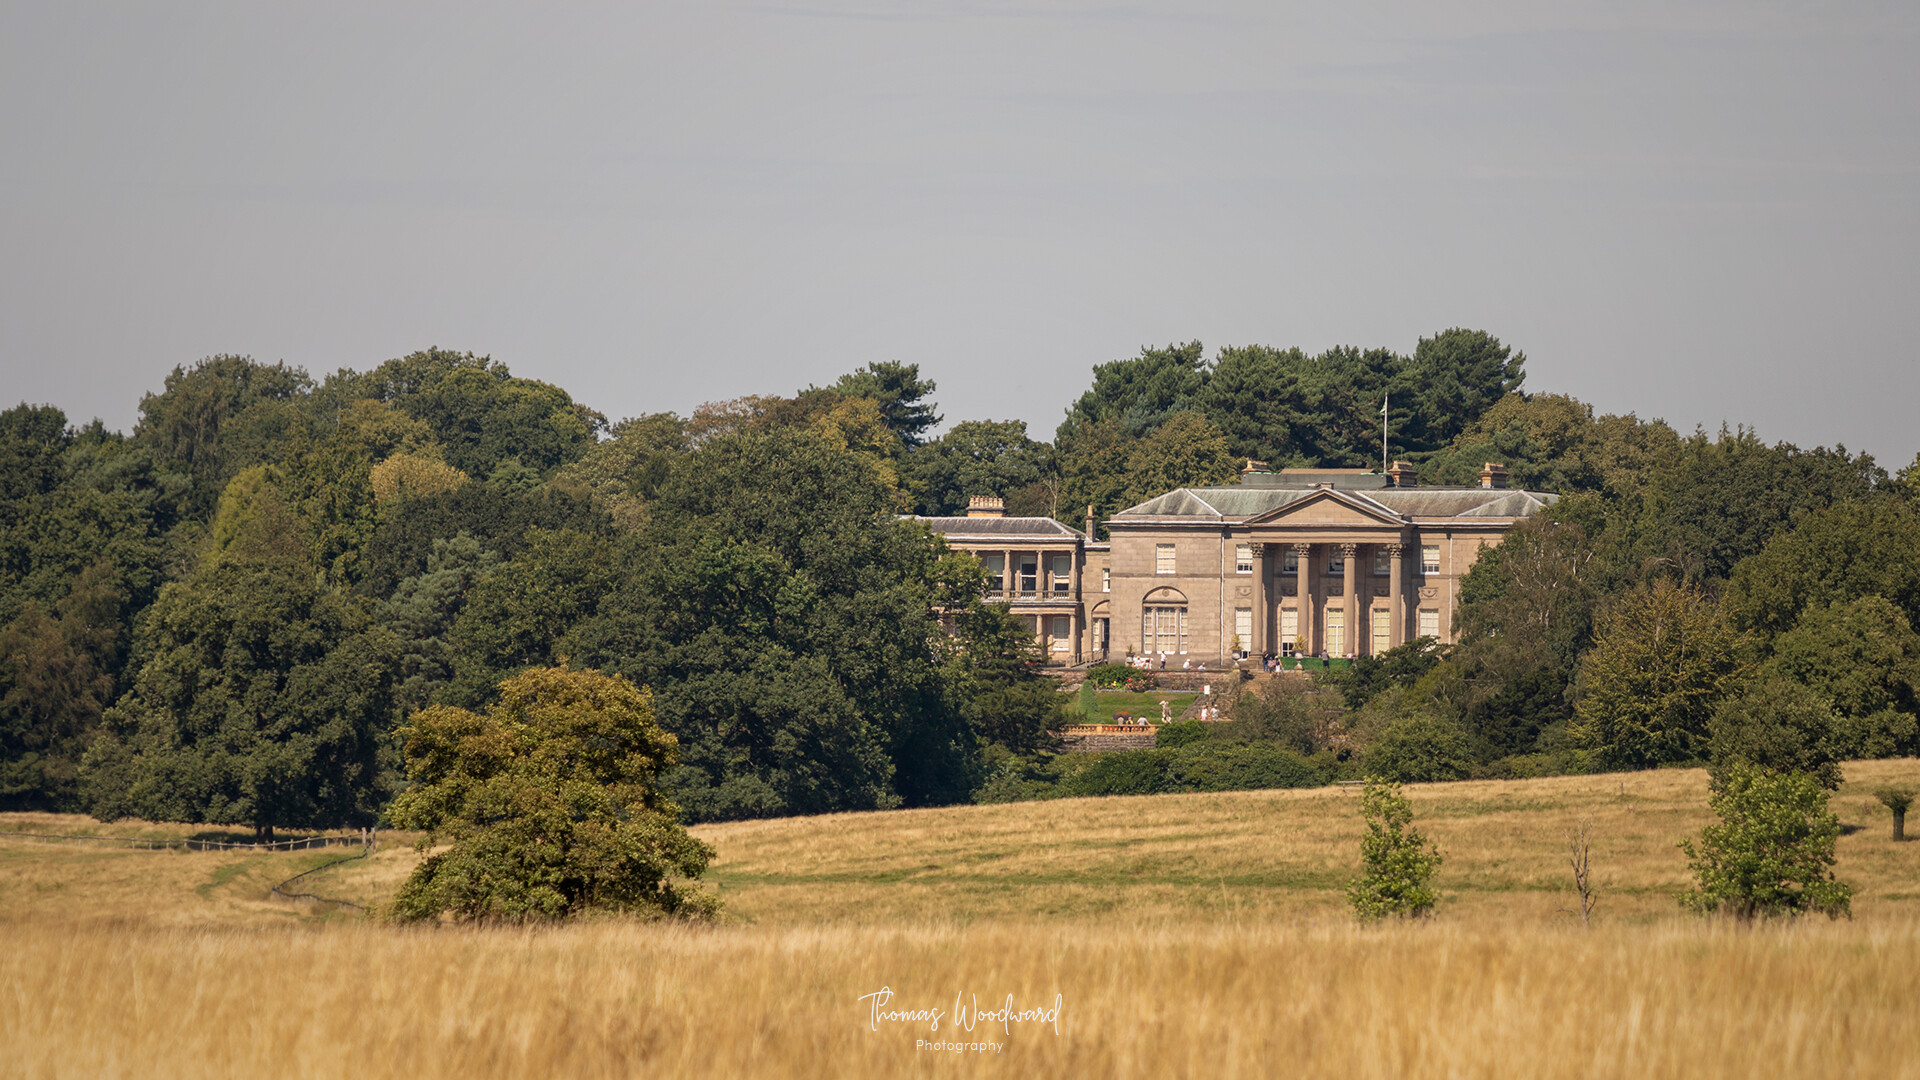 Thomas woodward tatton park 6